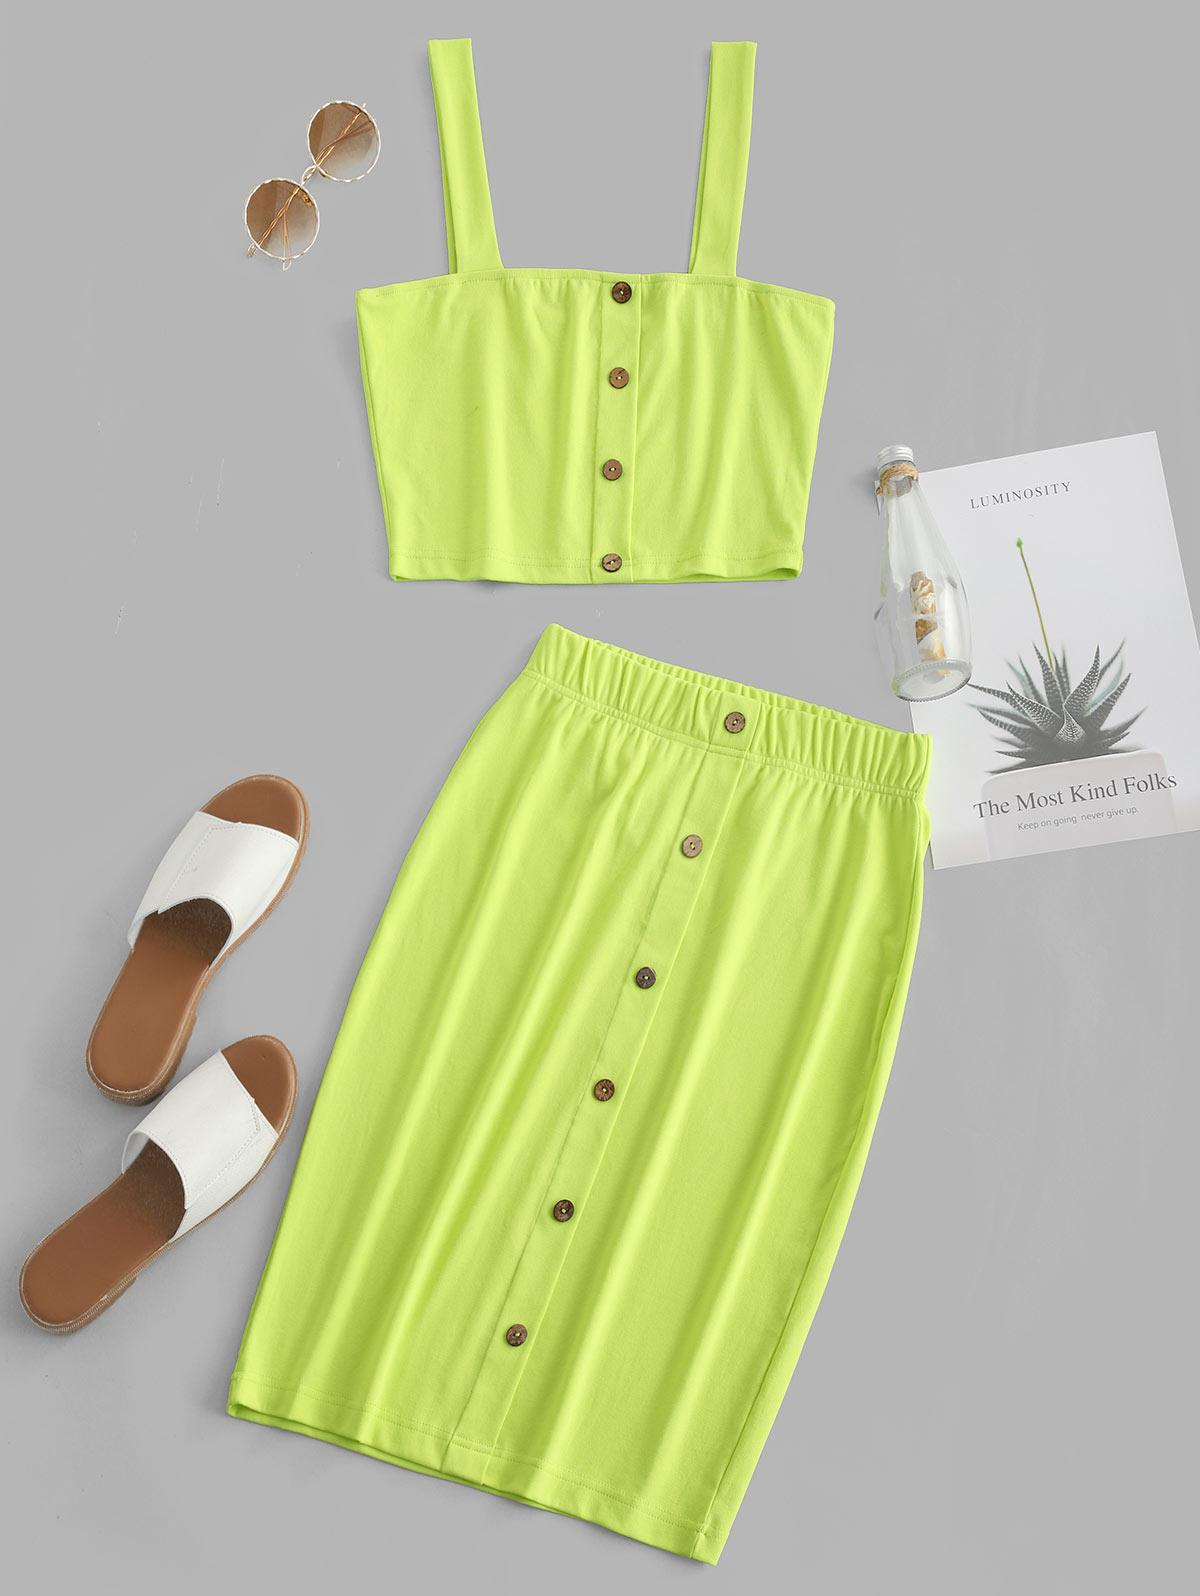 ZAFUL Buttoned Cropped Neon Two Piece Dress, Tea green